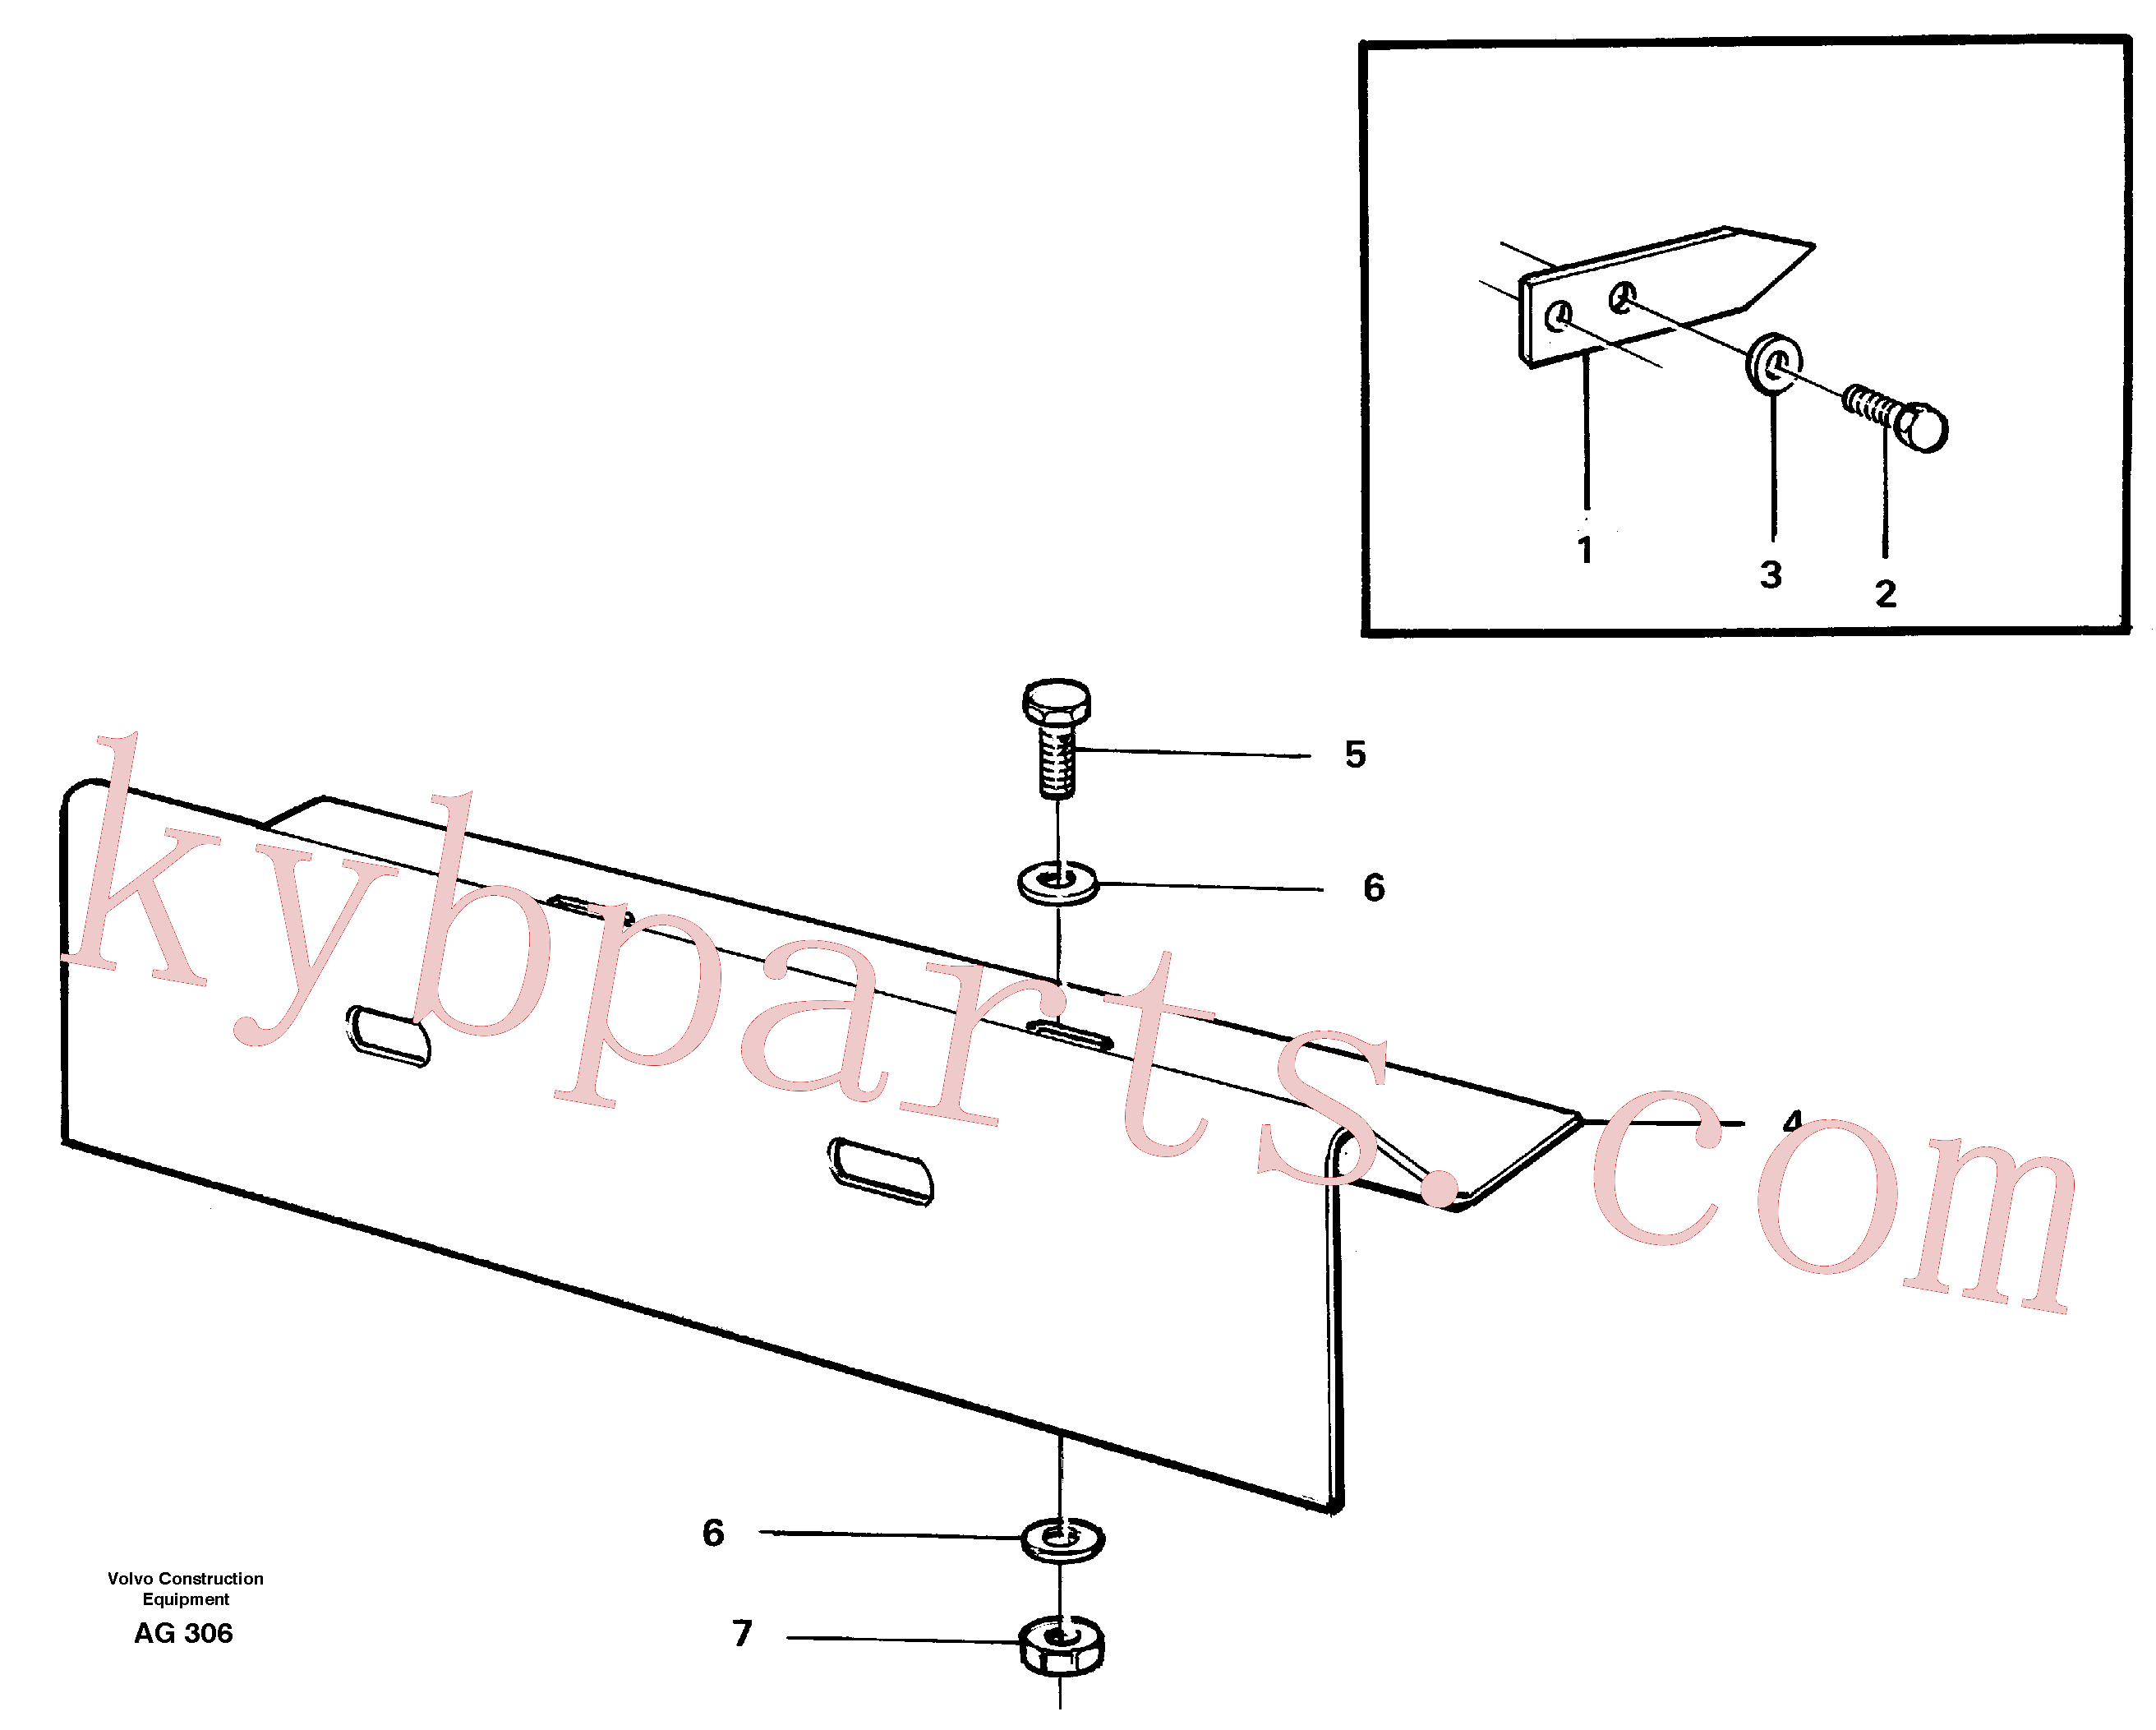 VOE976943 for Volvo German version(AG306 assembly)